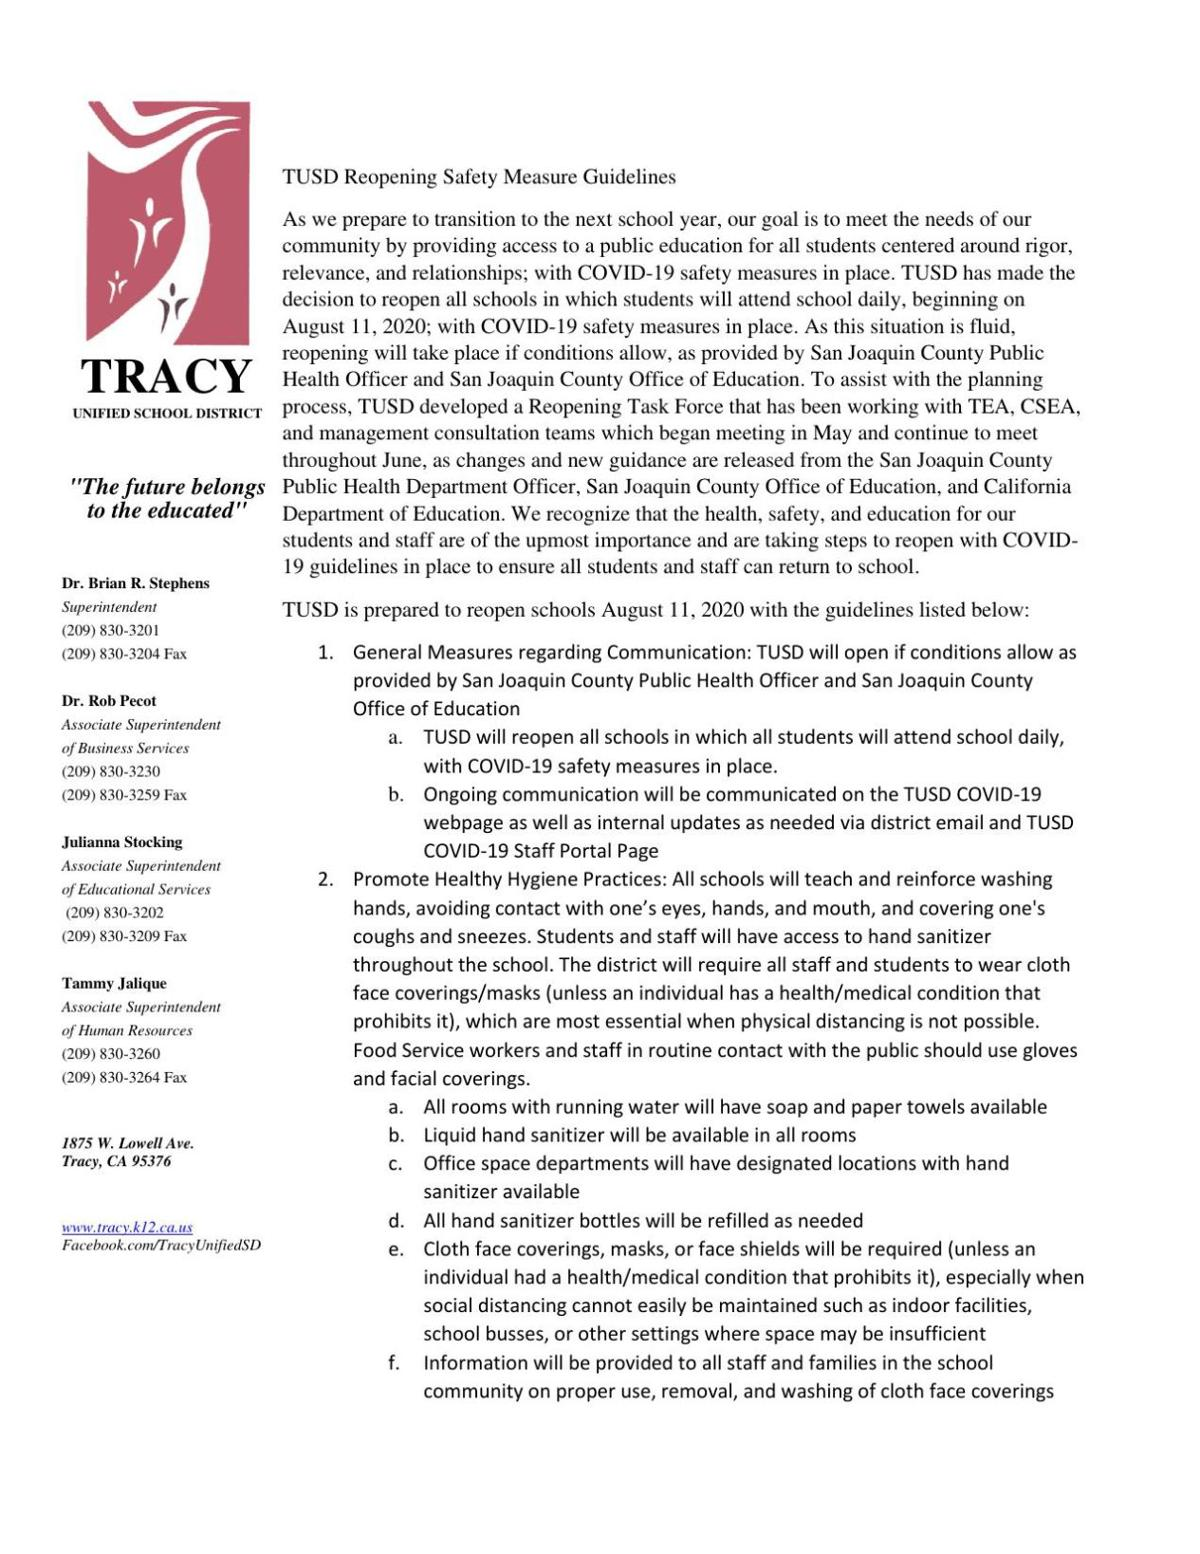 TUSD Reopening Safety Measure Guidelines